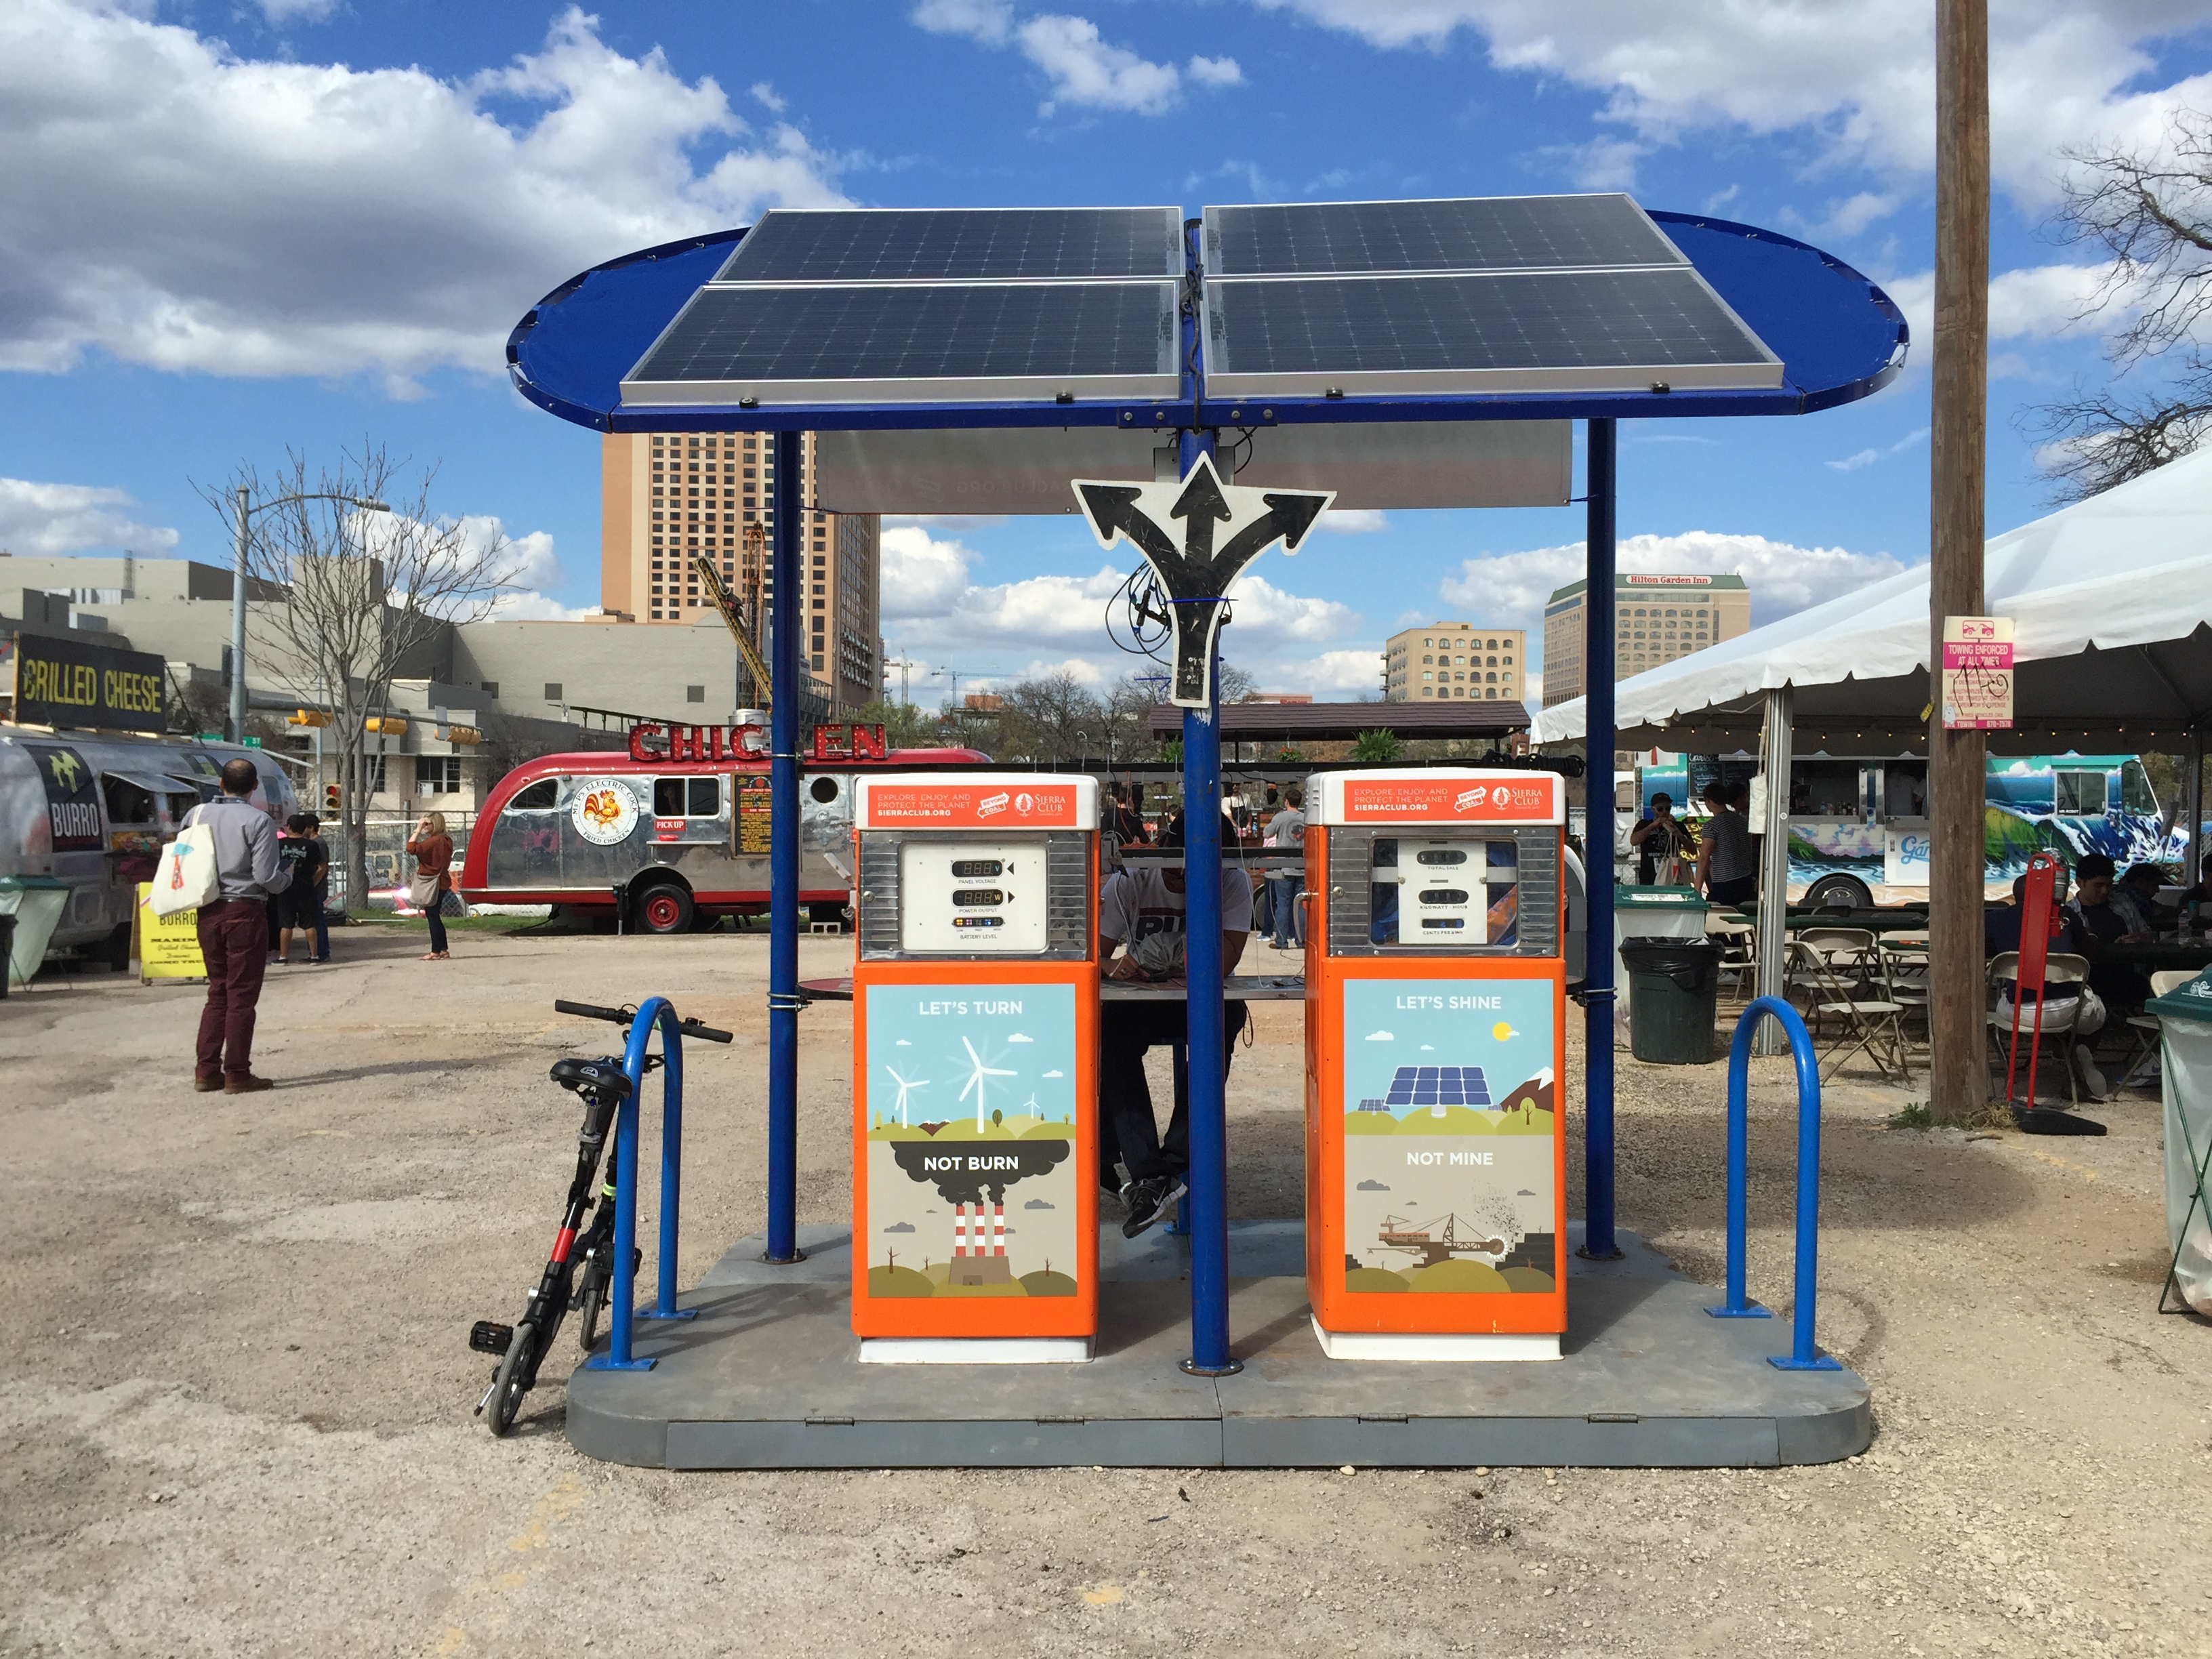 <p>Festival goers flocked to this solar-powered charging station at the Southbites food truck emporium, which was made to look like gas pumps.</p>